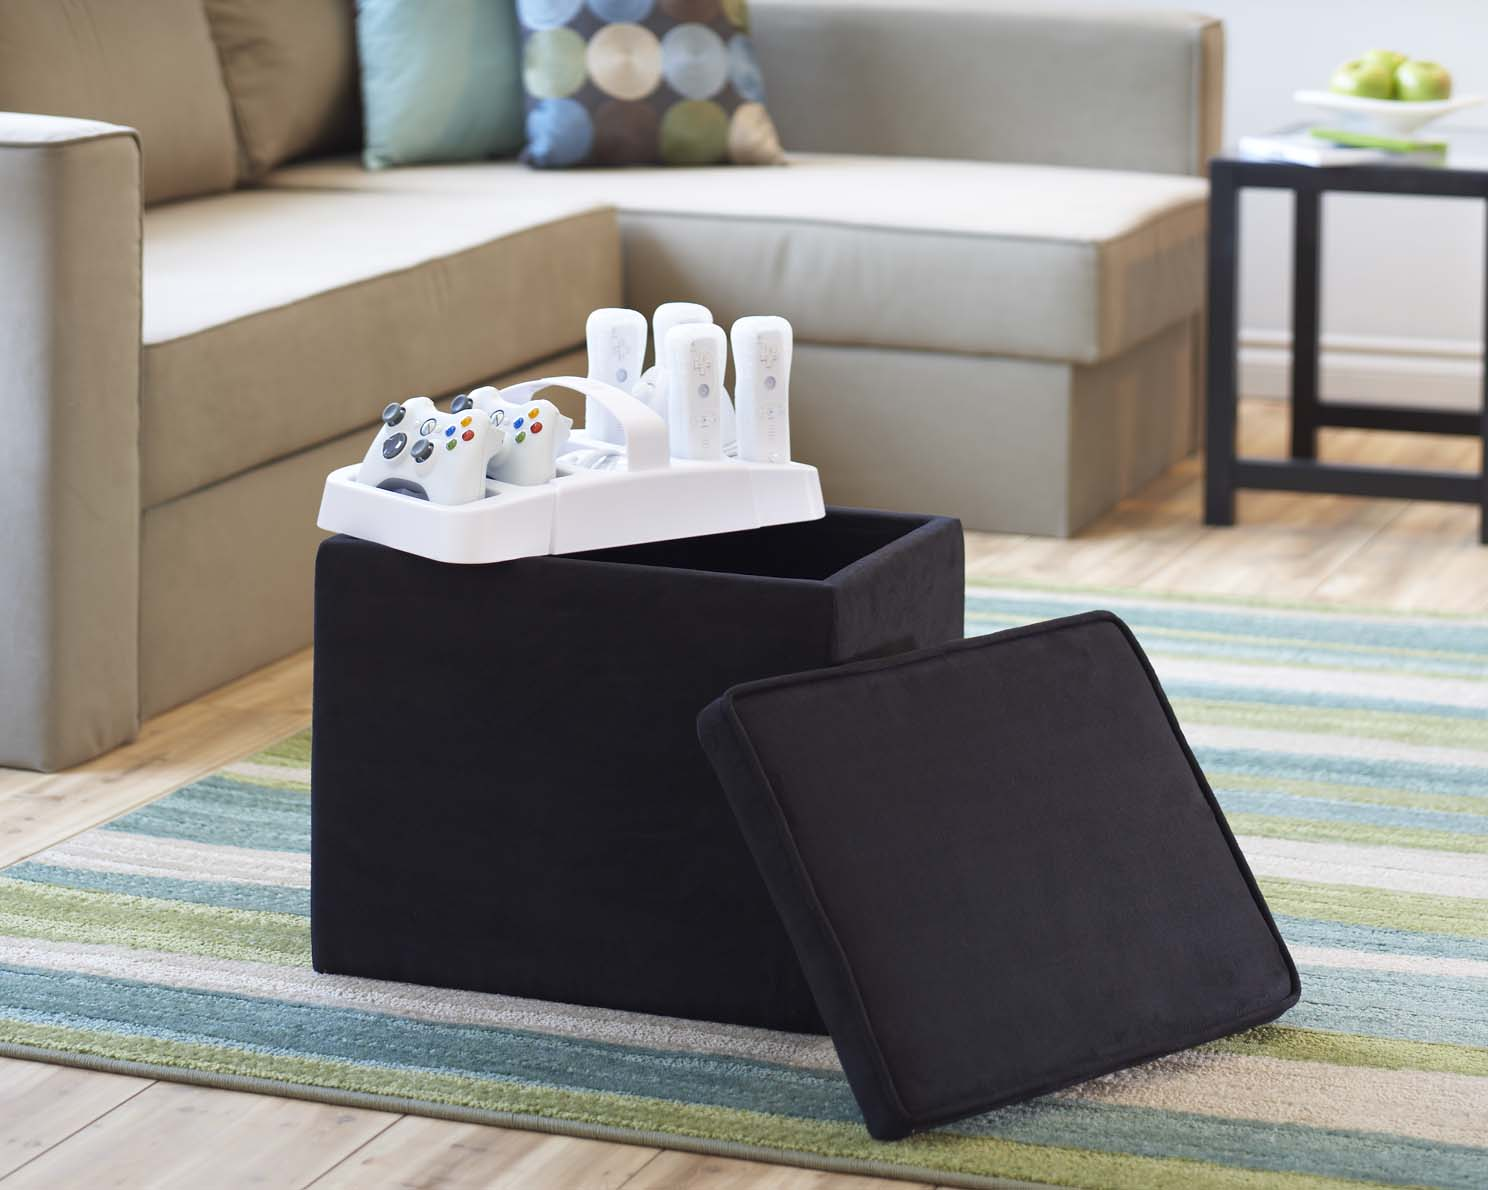 ... LevelUp Universal Double Gaming Ottoman is an all-in-one storage  solution for both Wii and Xbox consoles, games and accessories.universal  double - Slam Brands Introduces All-In-One Storage Solutions For Wii And